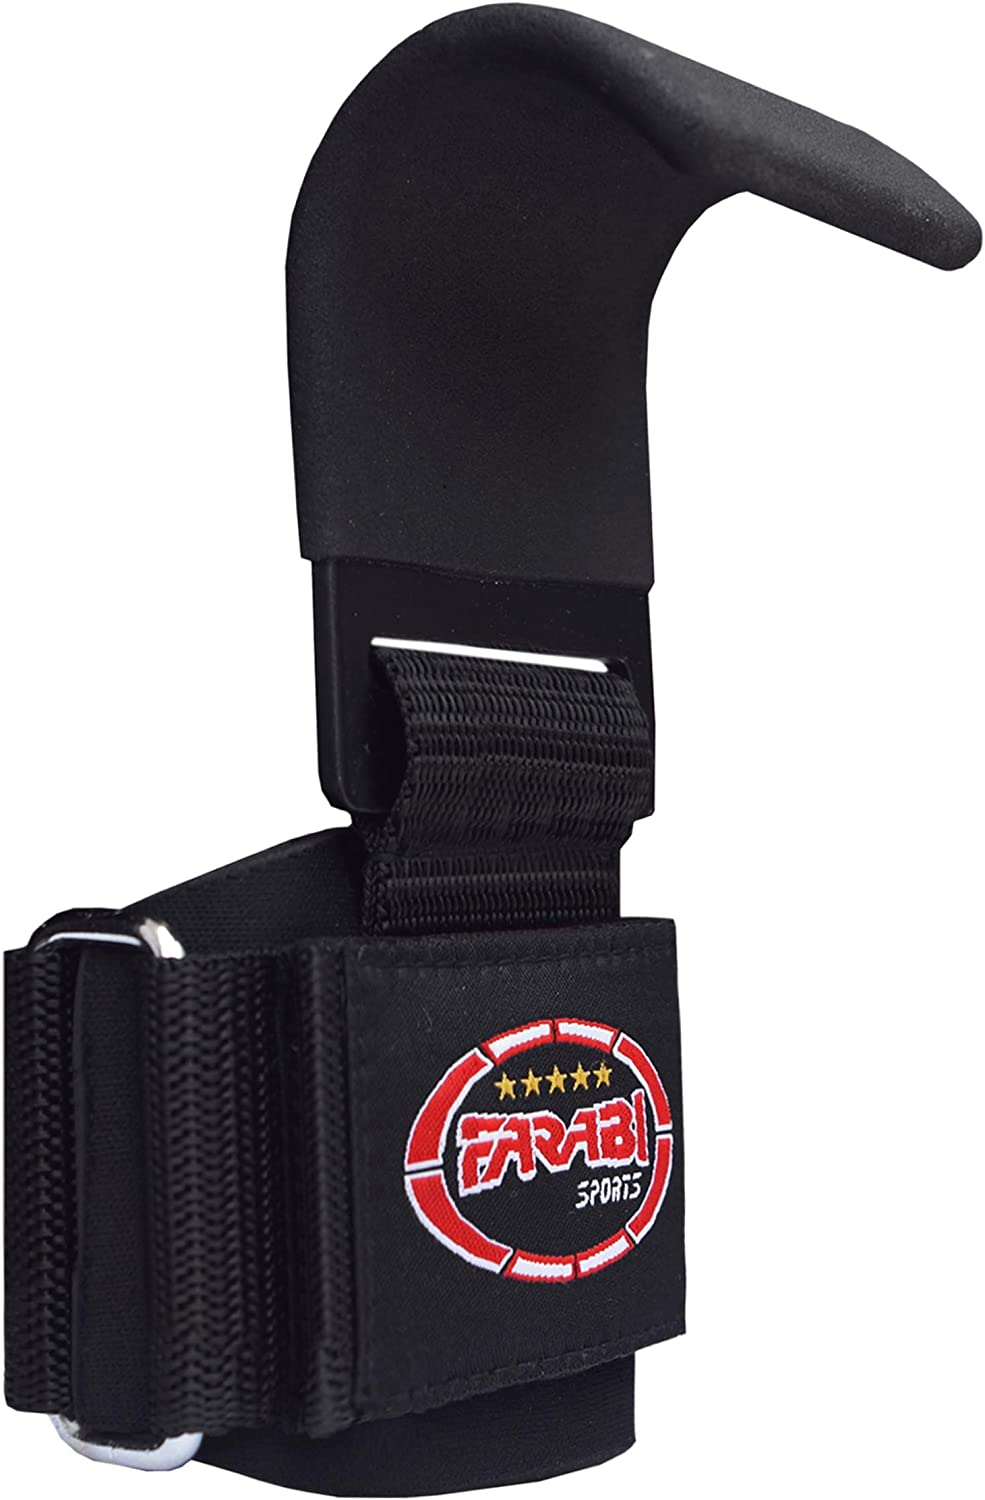 Farabi Wrist Support Wraps Straps Gym Bar Fitness Exercise Dead Lifting Pair